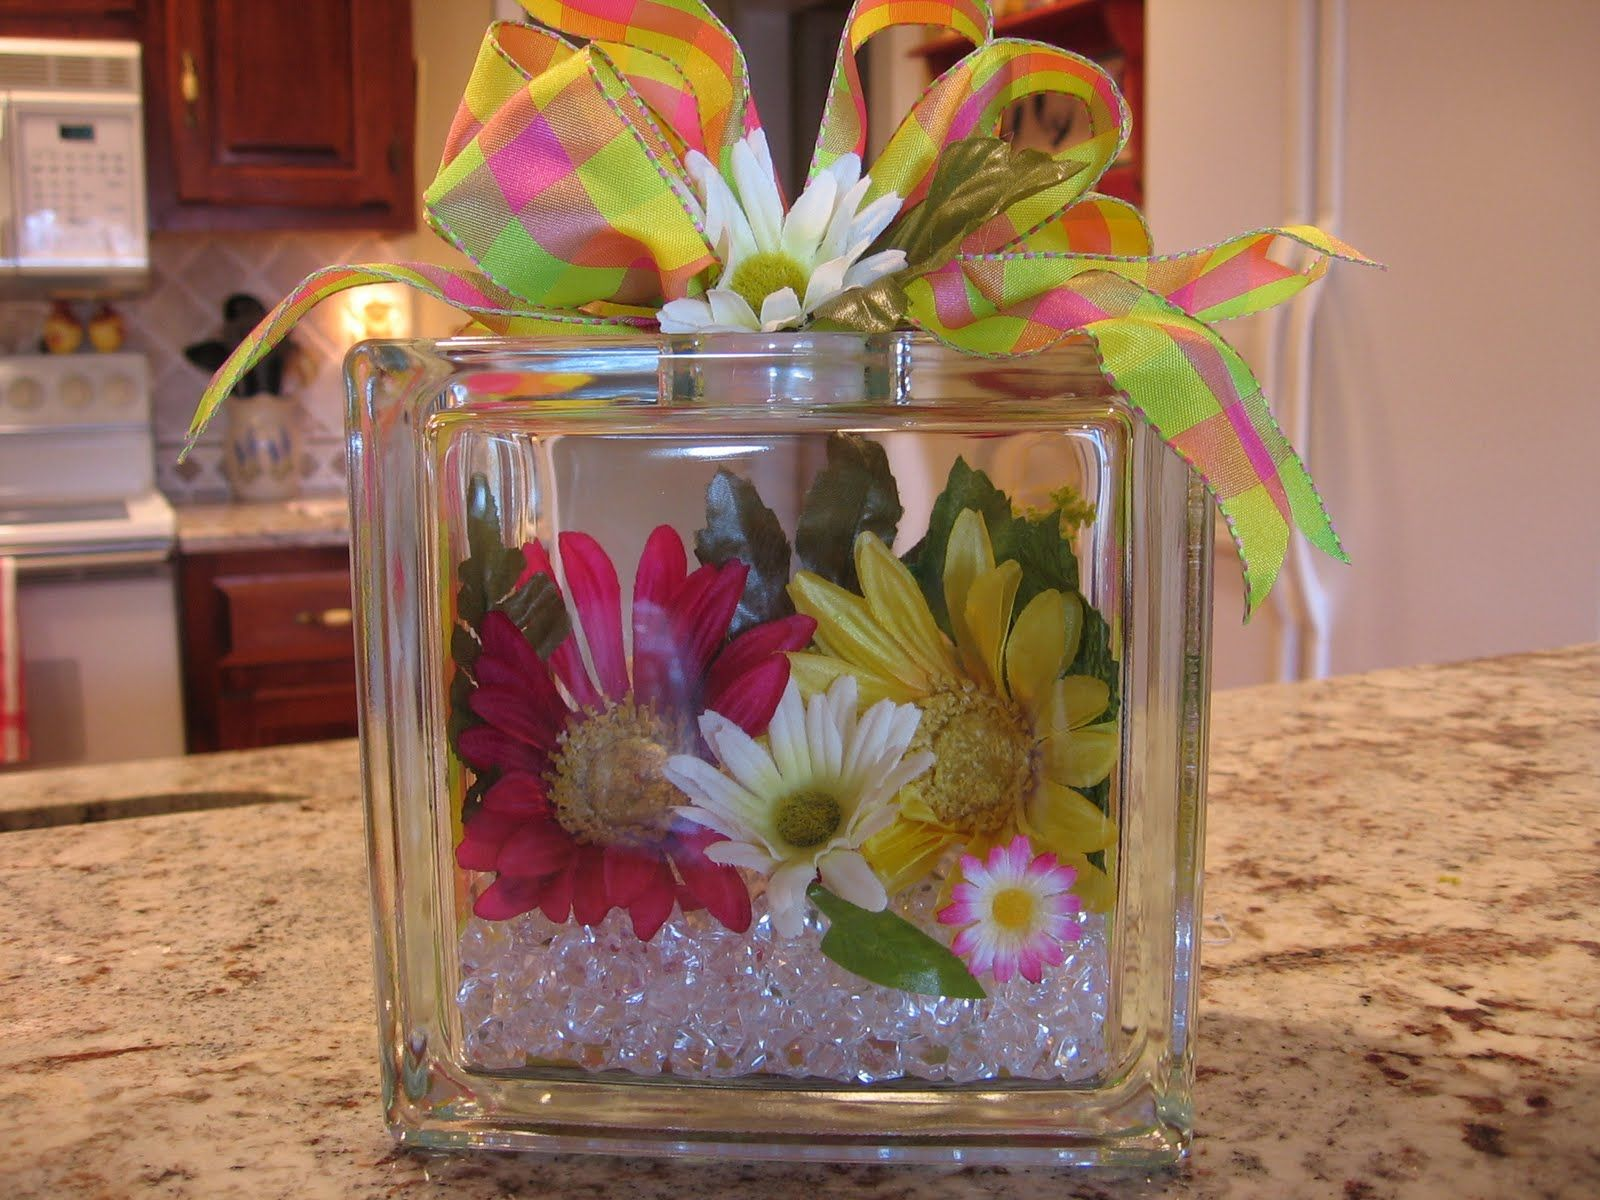 Glass block crafts projects - Fill Them With Flowers And Glass Stones Its Endless What You Can Do